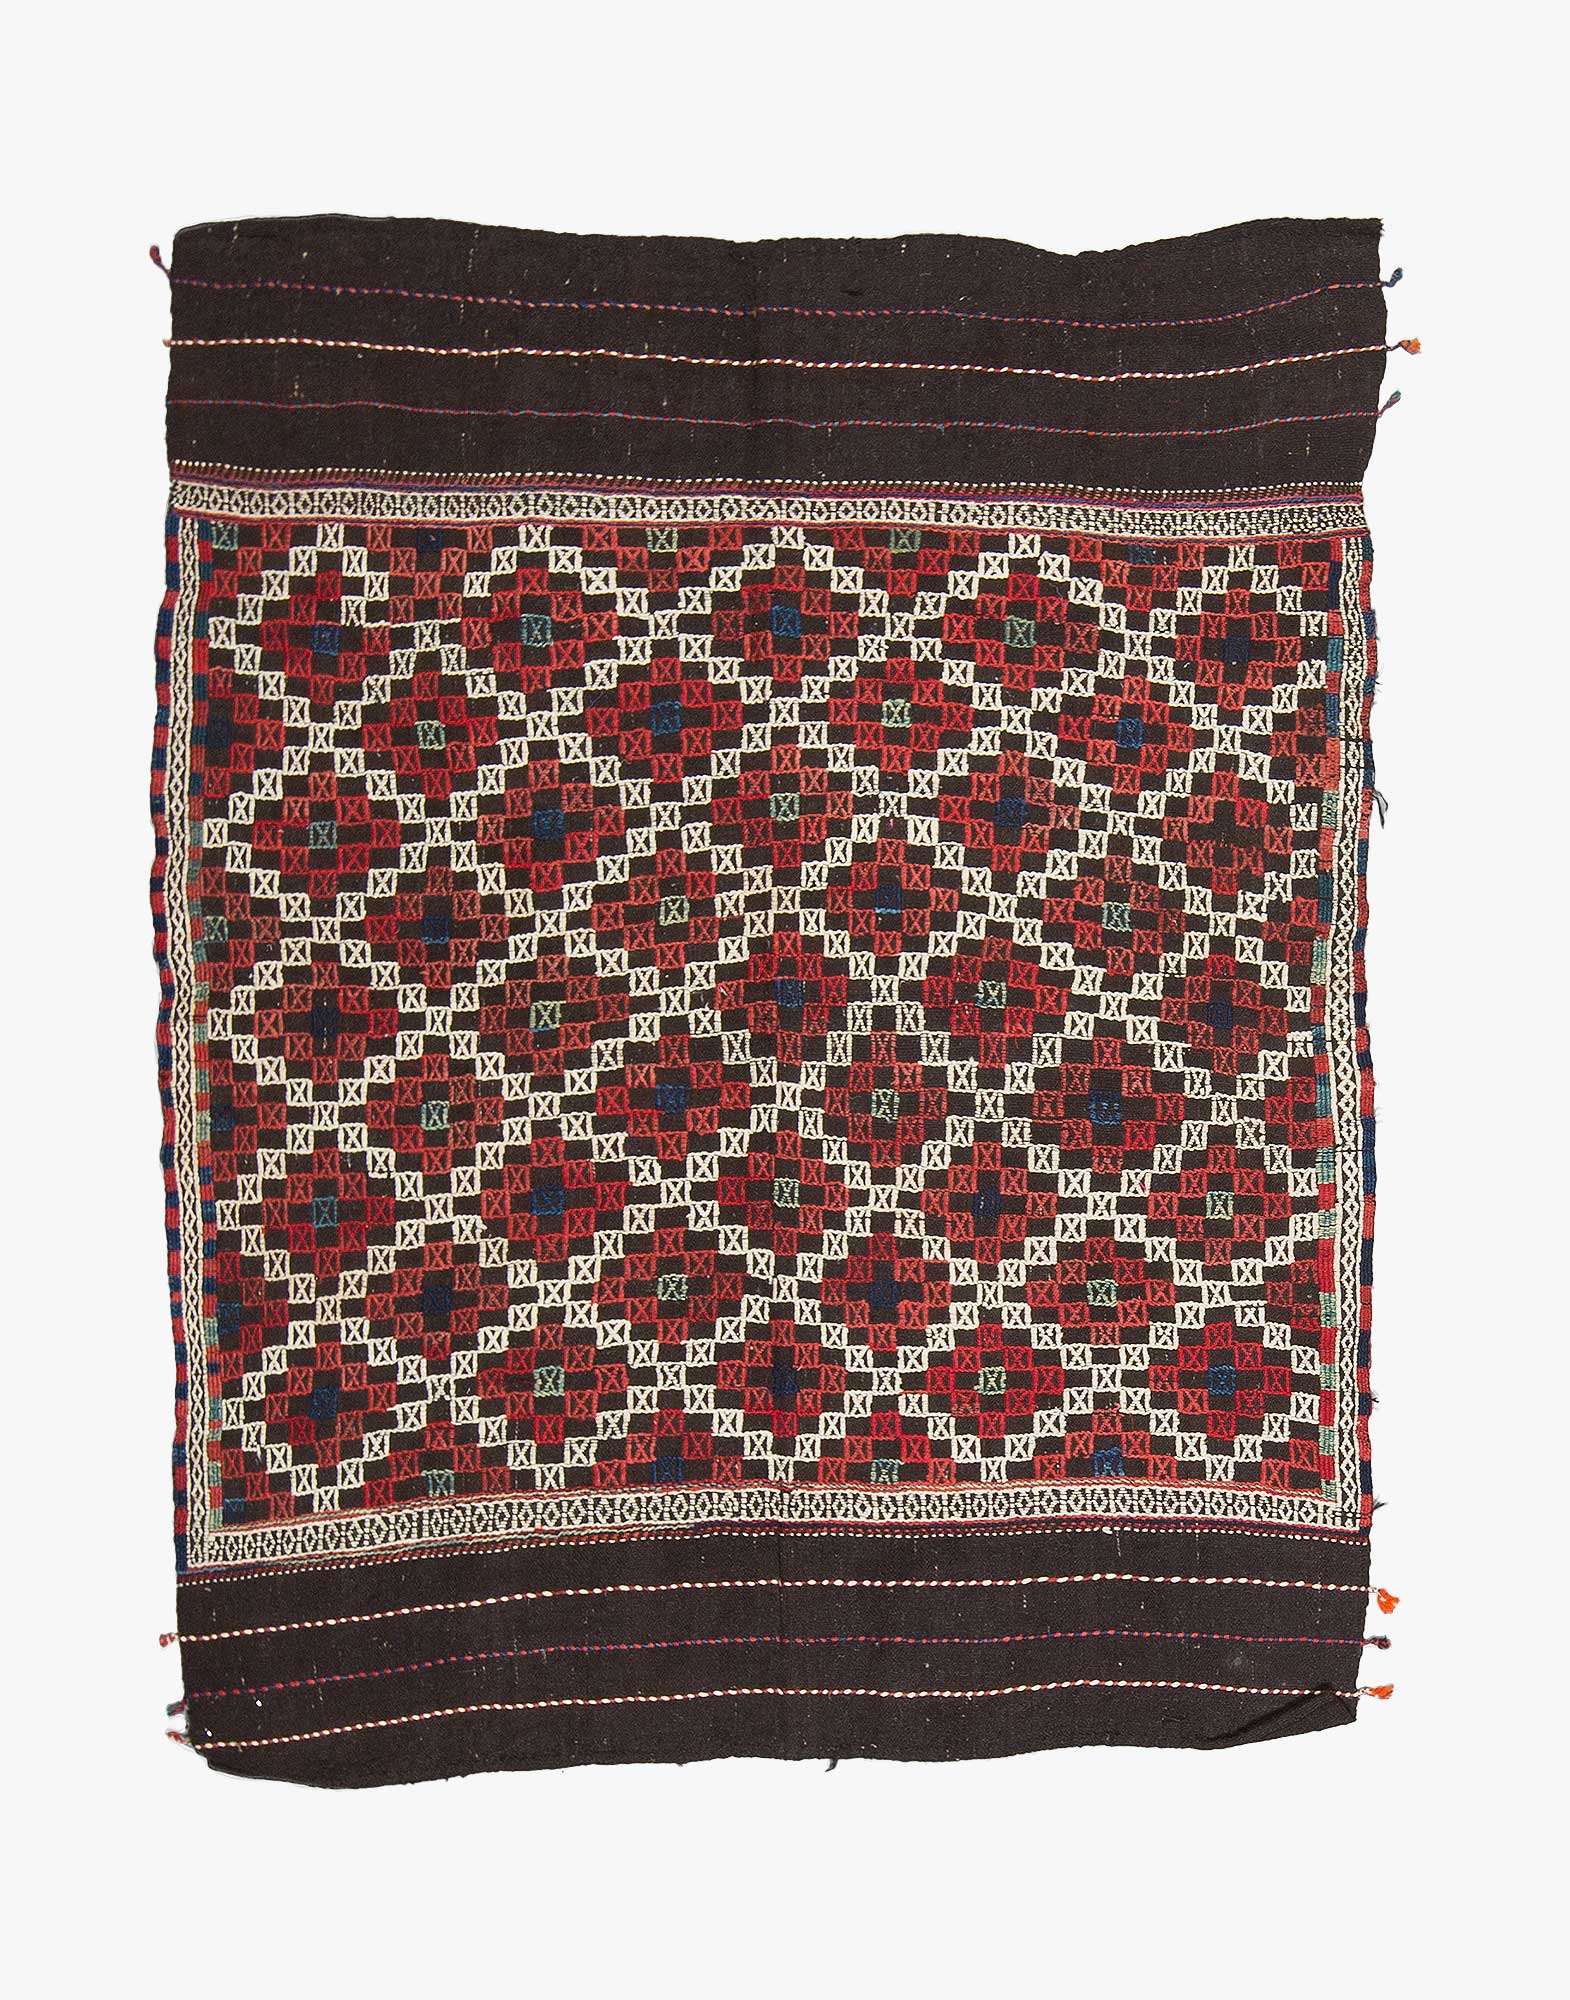 Bergama Zili Embroidered Kilim